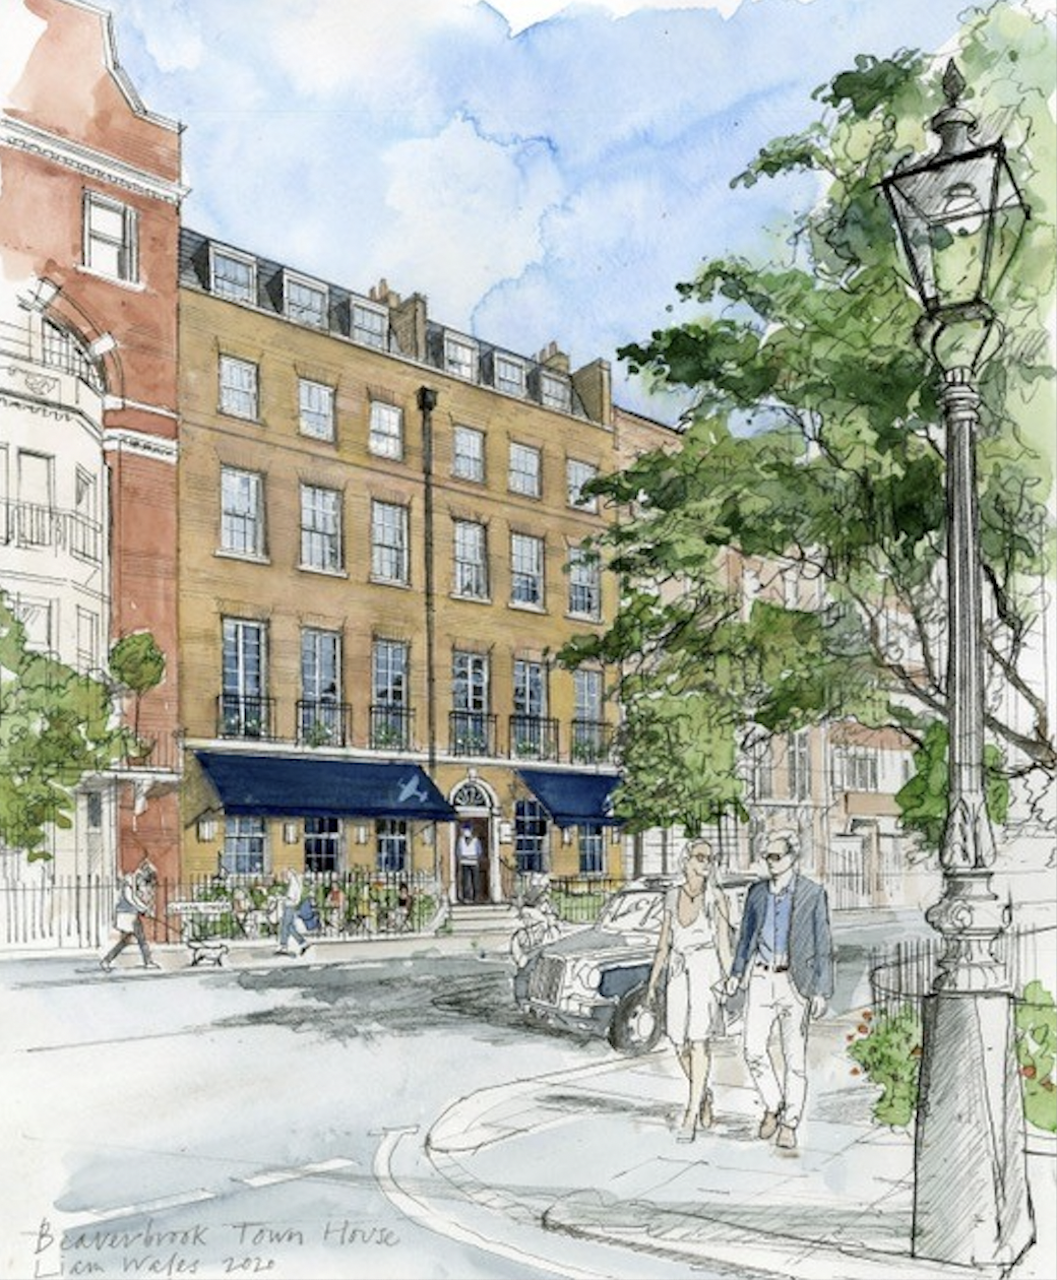 Beaverbrook Town House on Sloane Street, Chelsea will feature 14 luxury suites named after much-loved London theatres